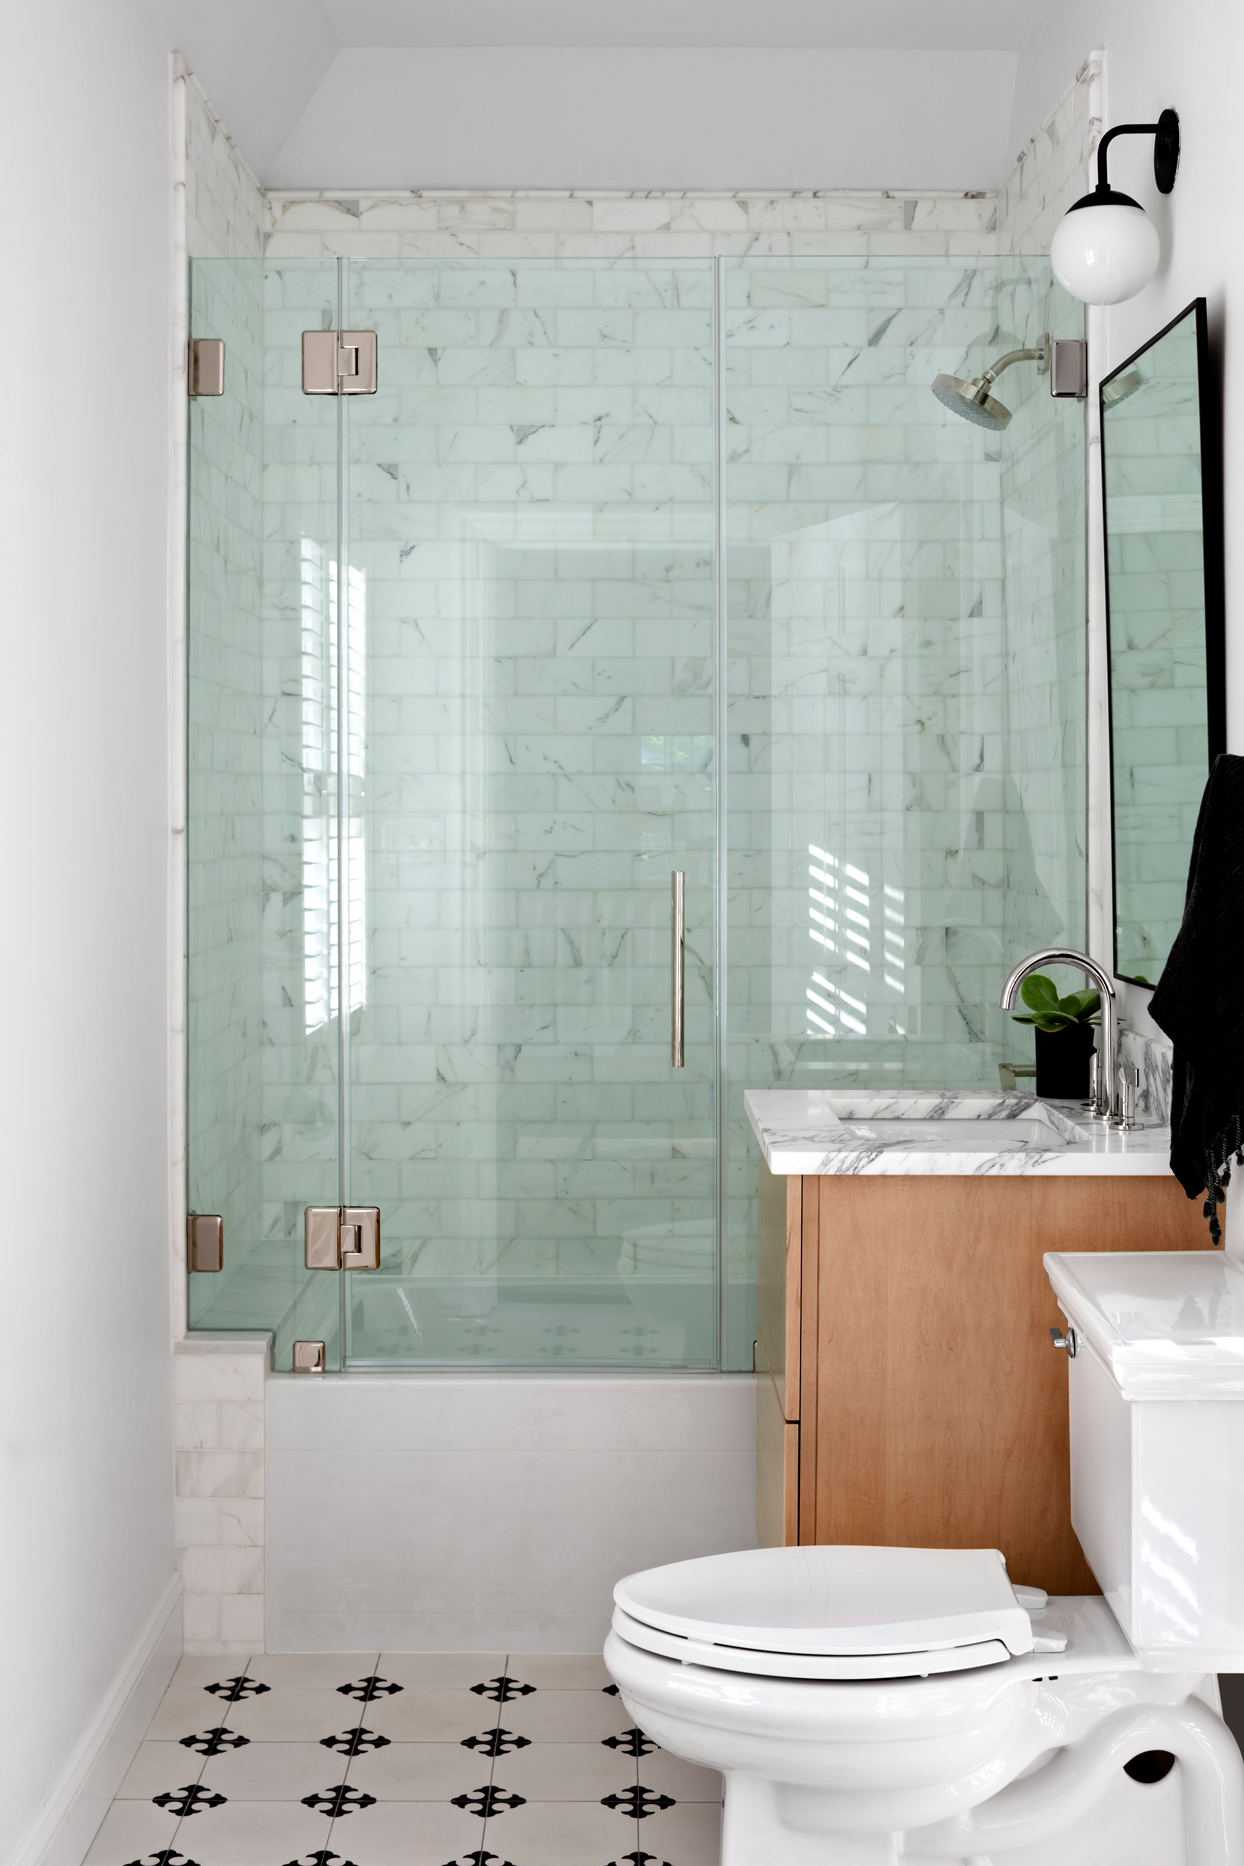 Cle tile bathroom floor and Calacatta subway tile shower walls